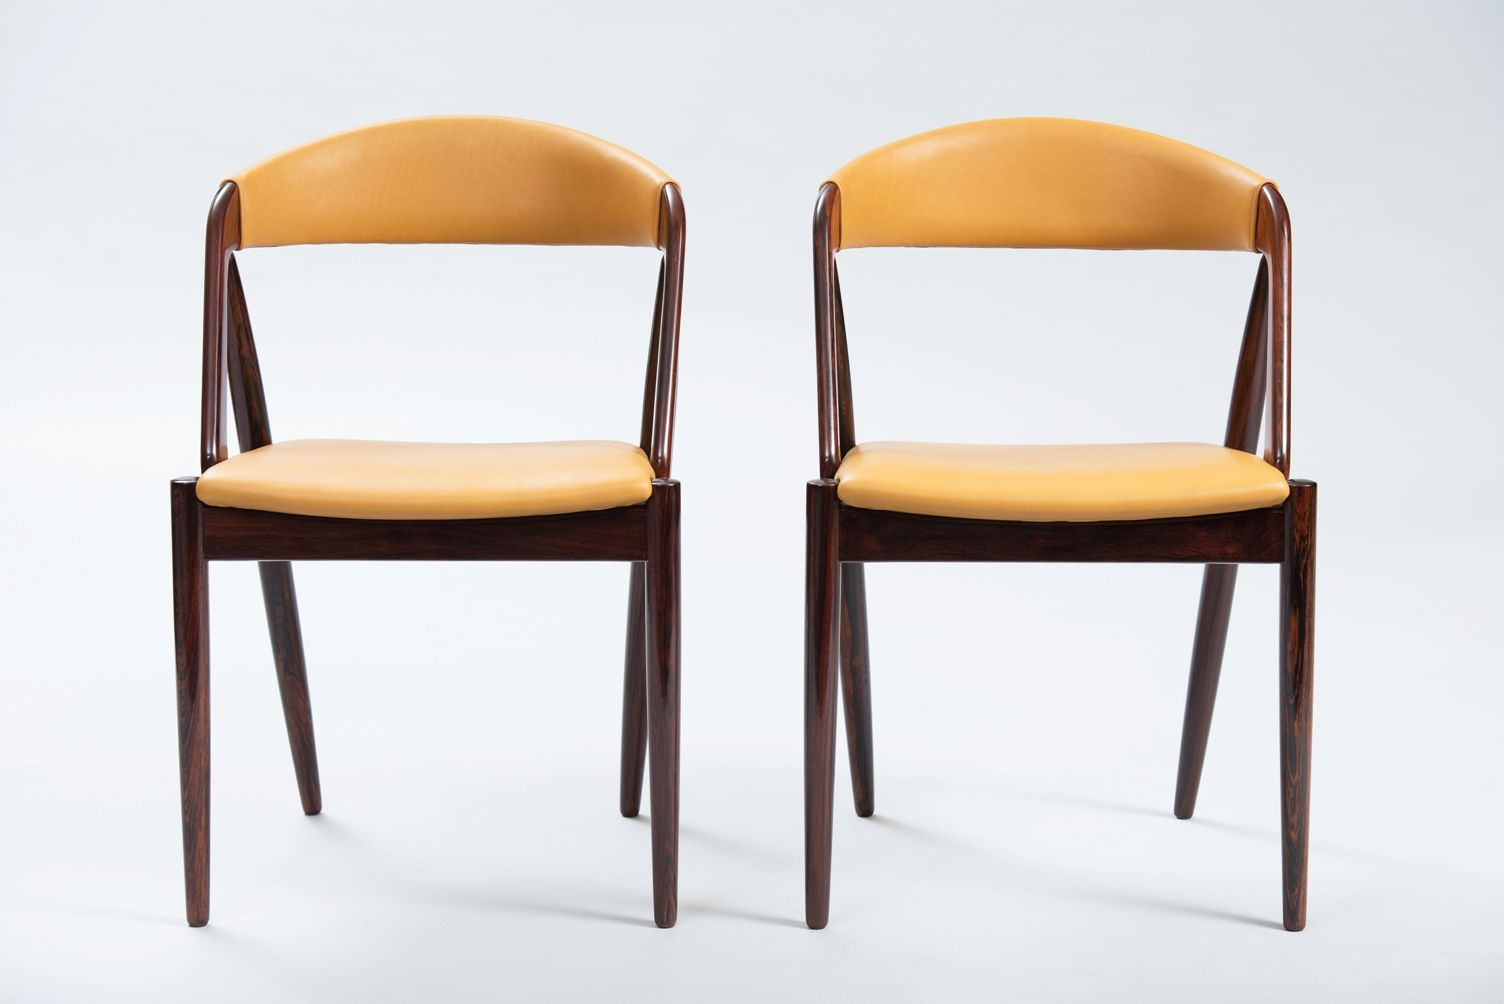 Rosewood Chairs By Kai Kristiansen Set Of 6 For Sale At Pamono